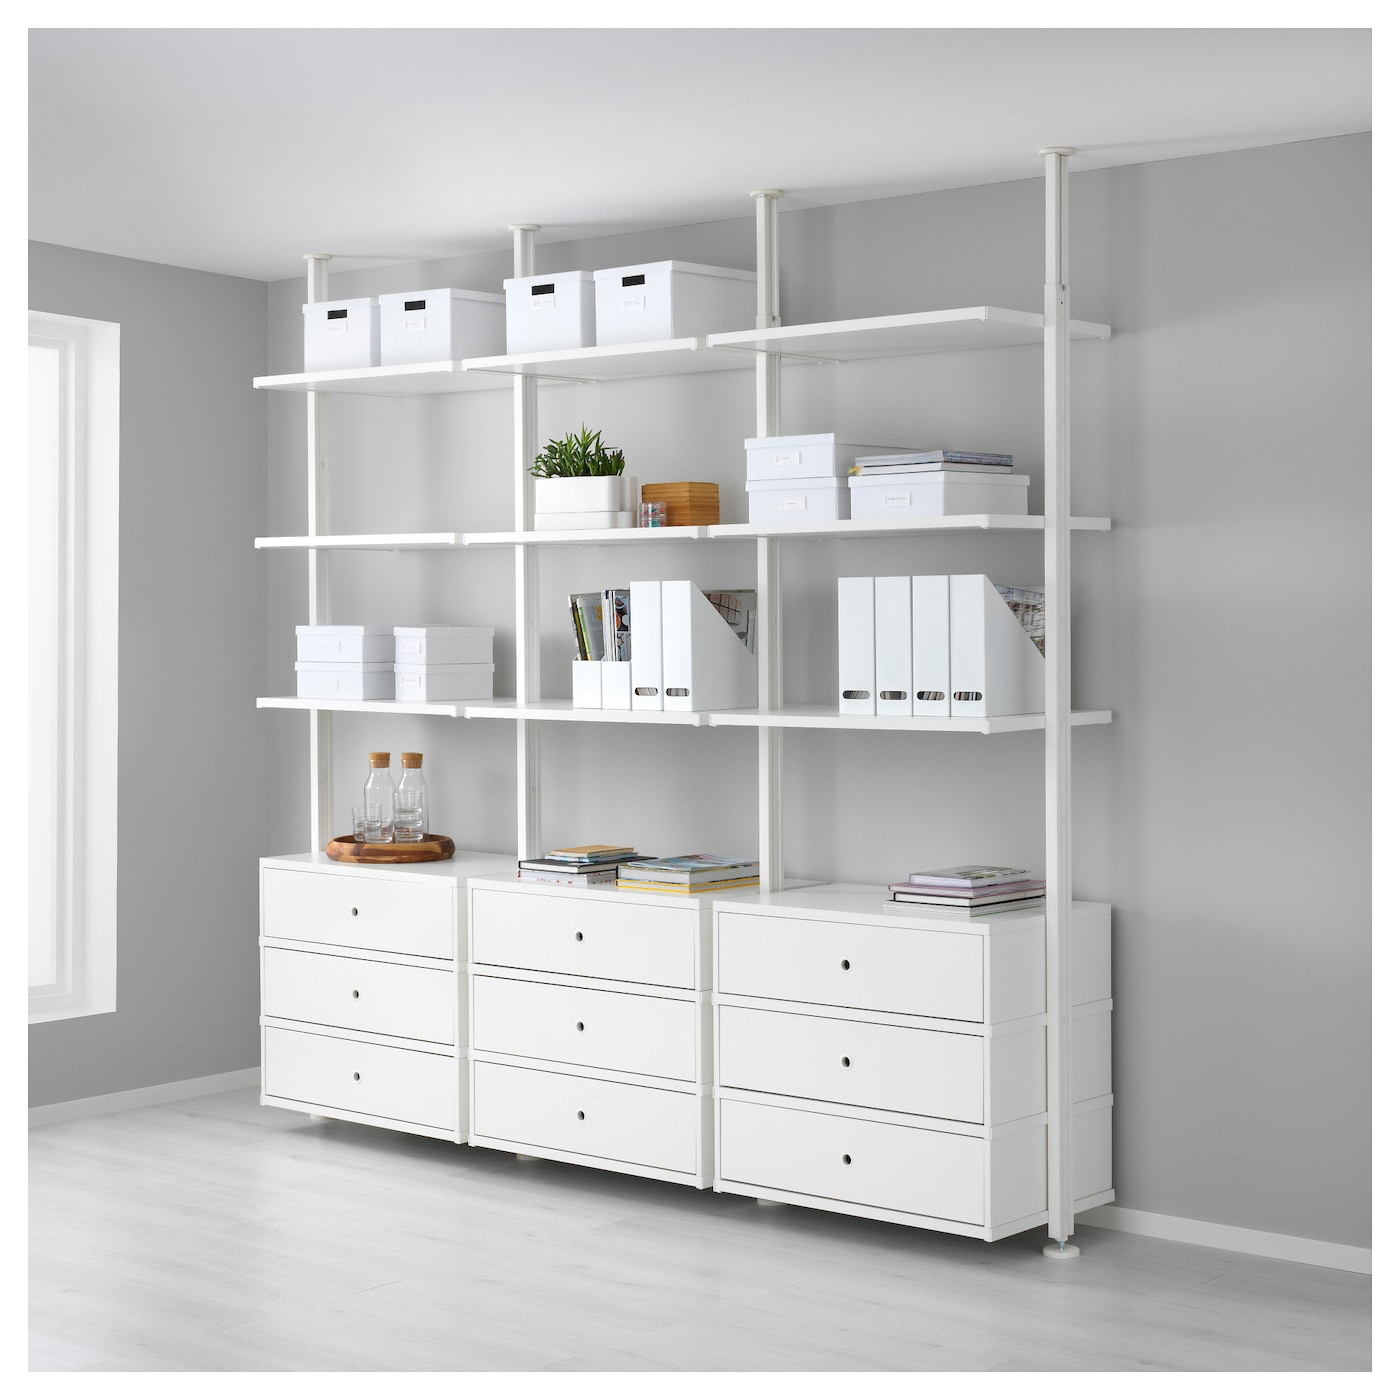 IKEA ELVARLI 3 sections